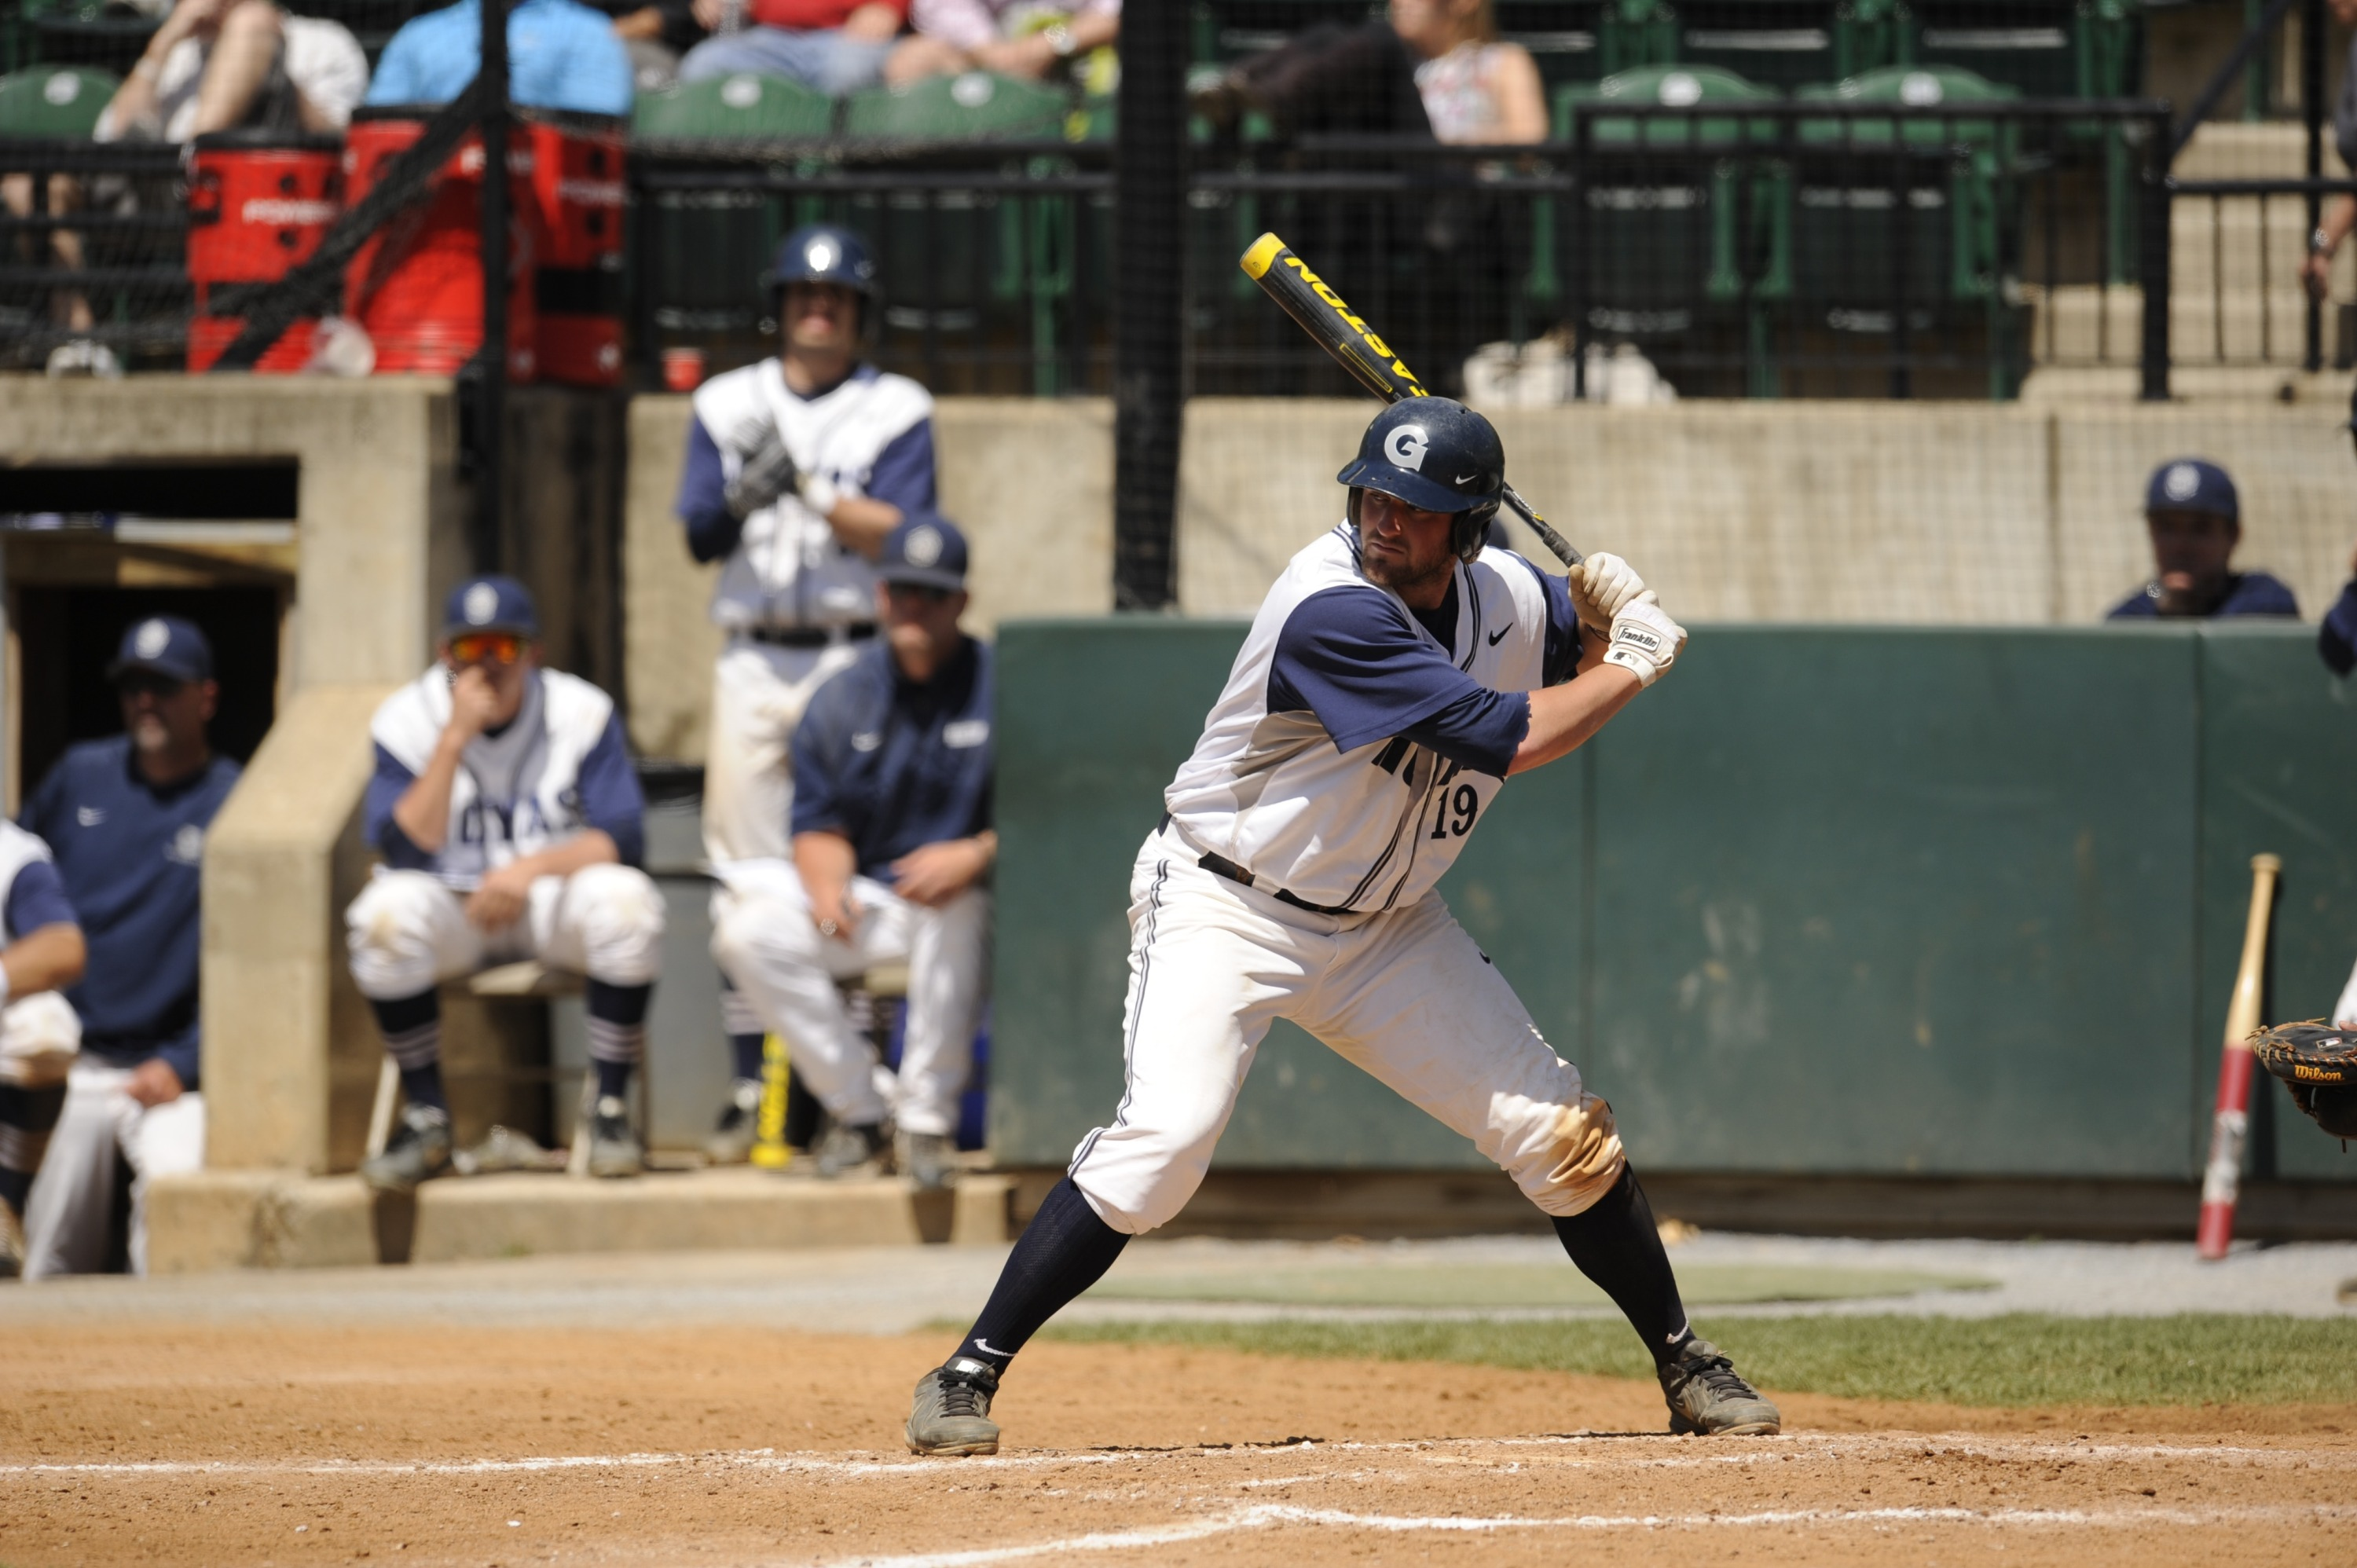 Steve Anderson had four hits, four RBI and was on base five times on Tuesday.